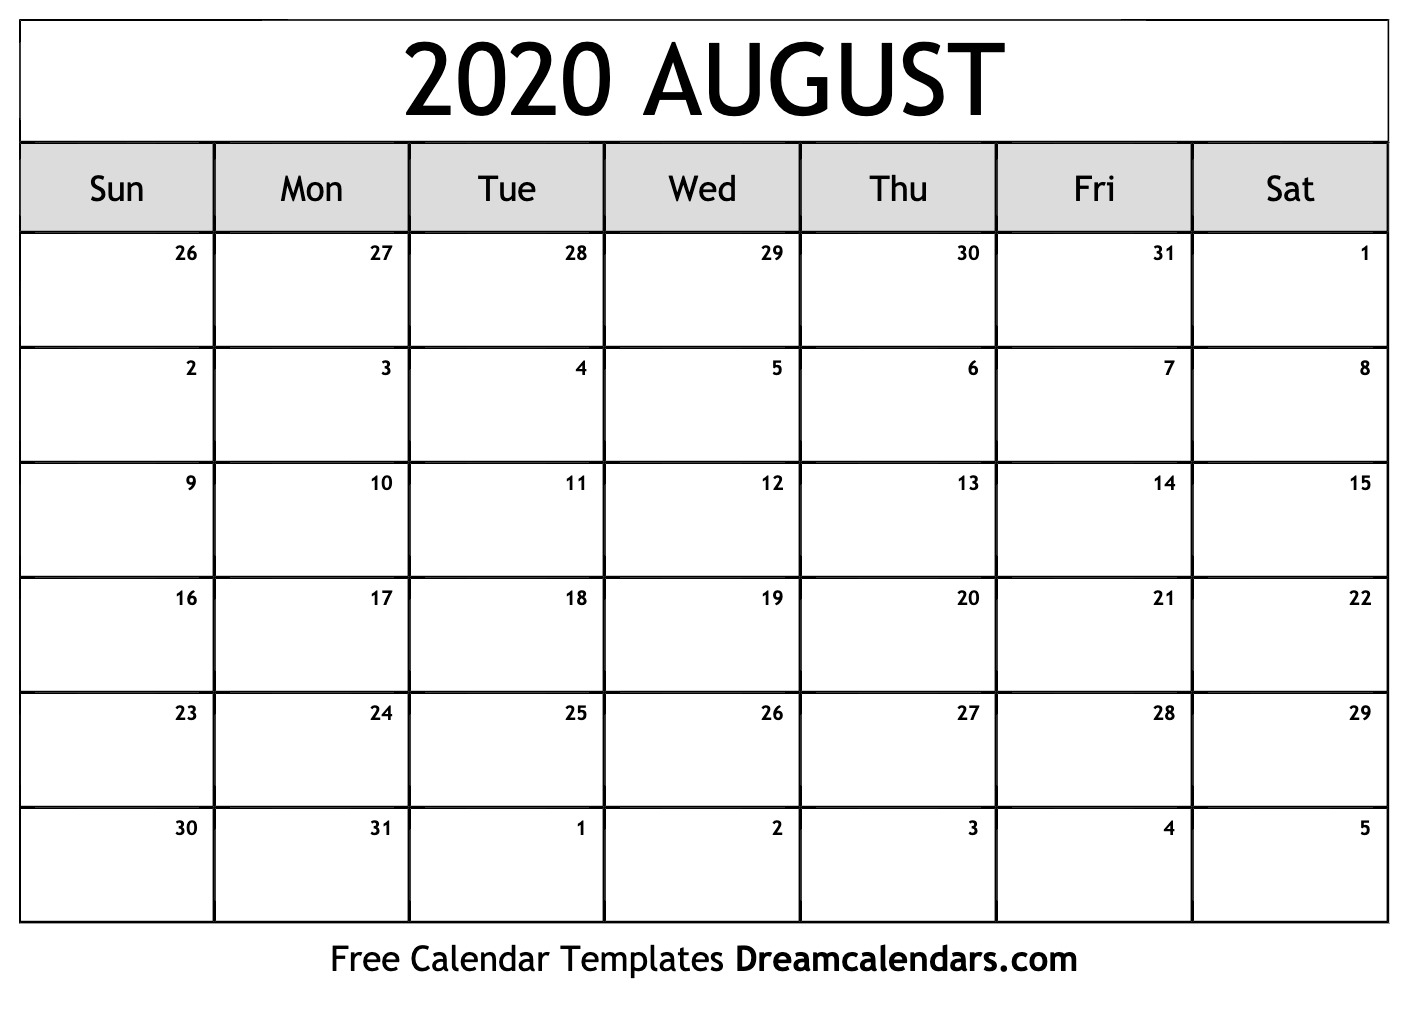 Printable Calendar Aug 2020 - Wpa.wpart.co